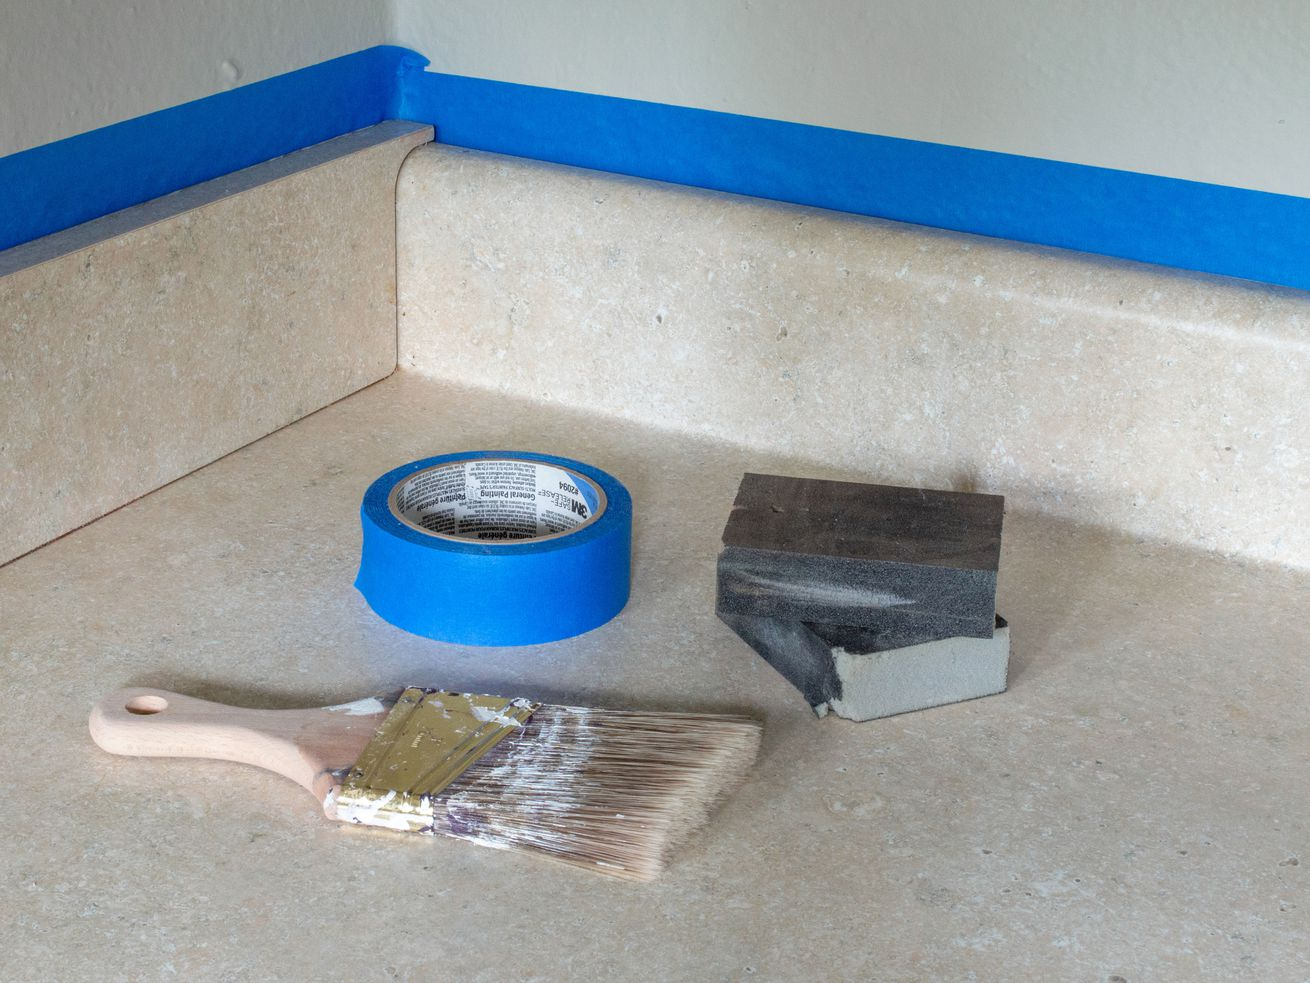 A paintbrush, blue tape, and sanding blocks sit on a beige laminate countertop.